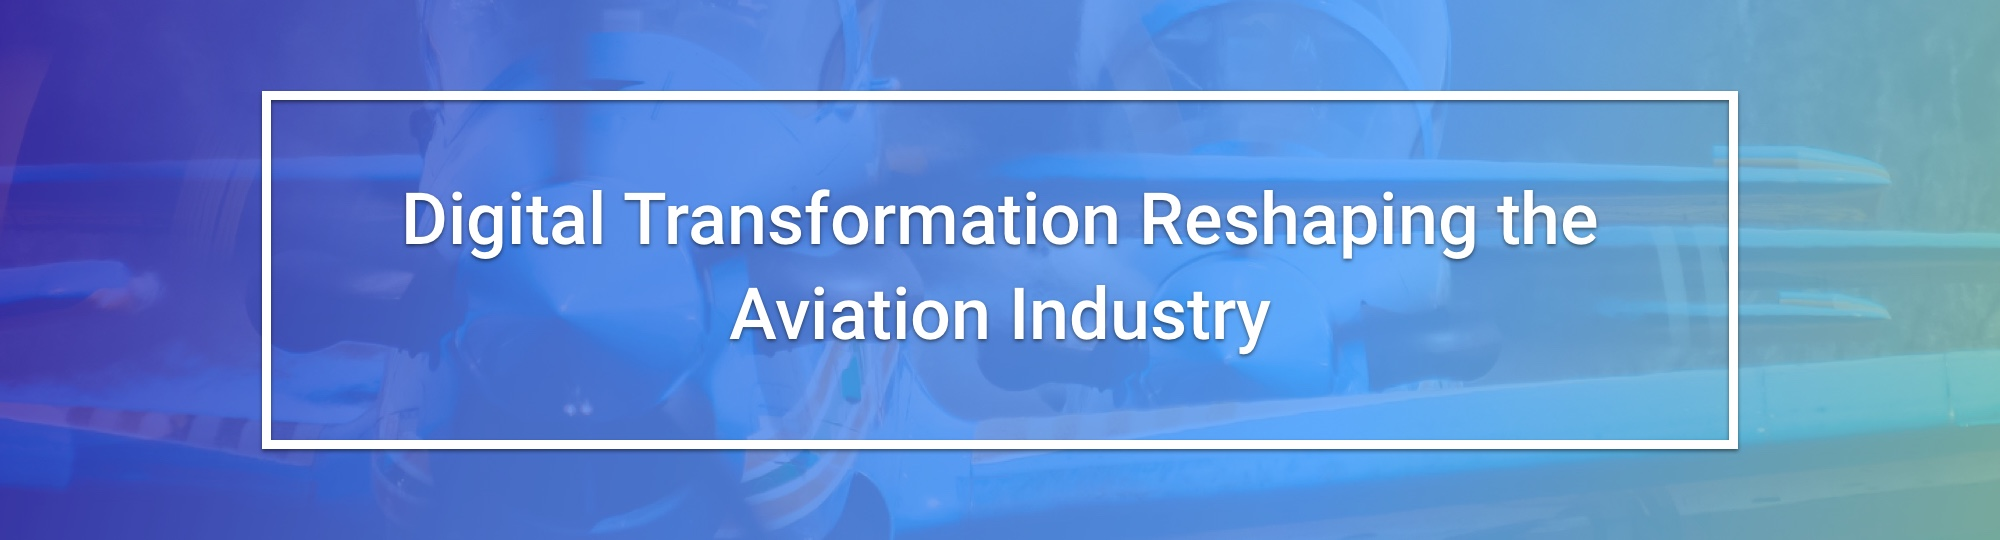 Digital Transformation Reshaping the aviation Industry